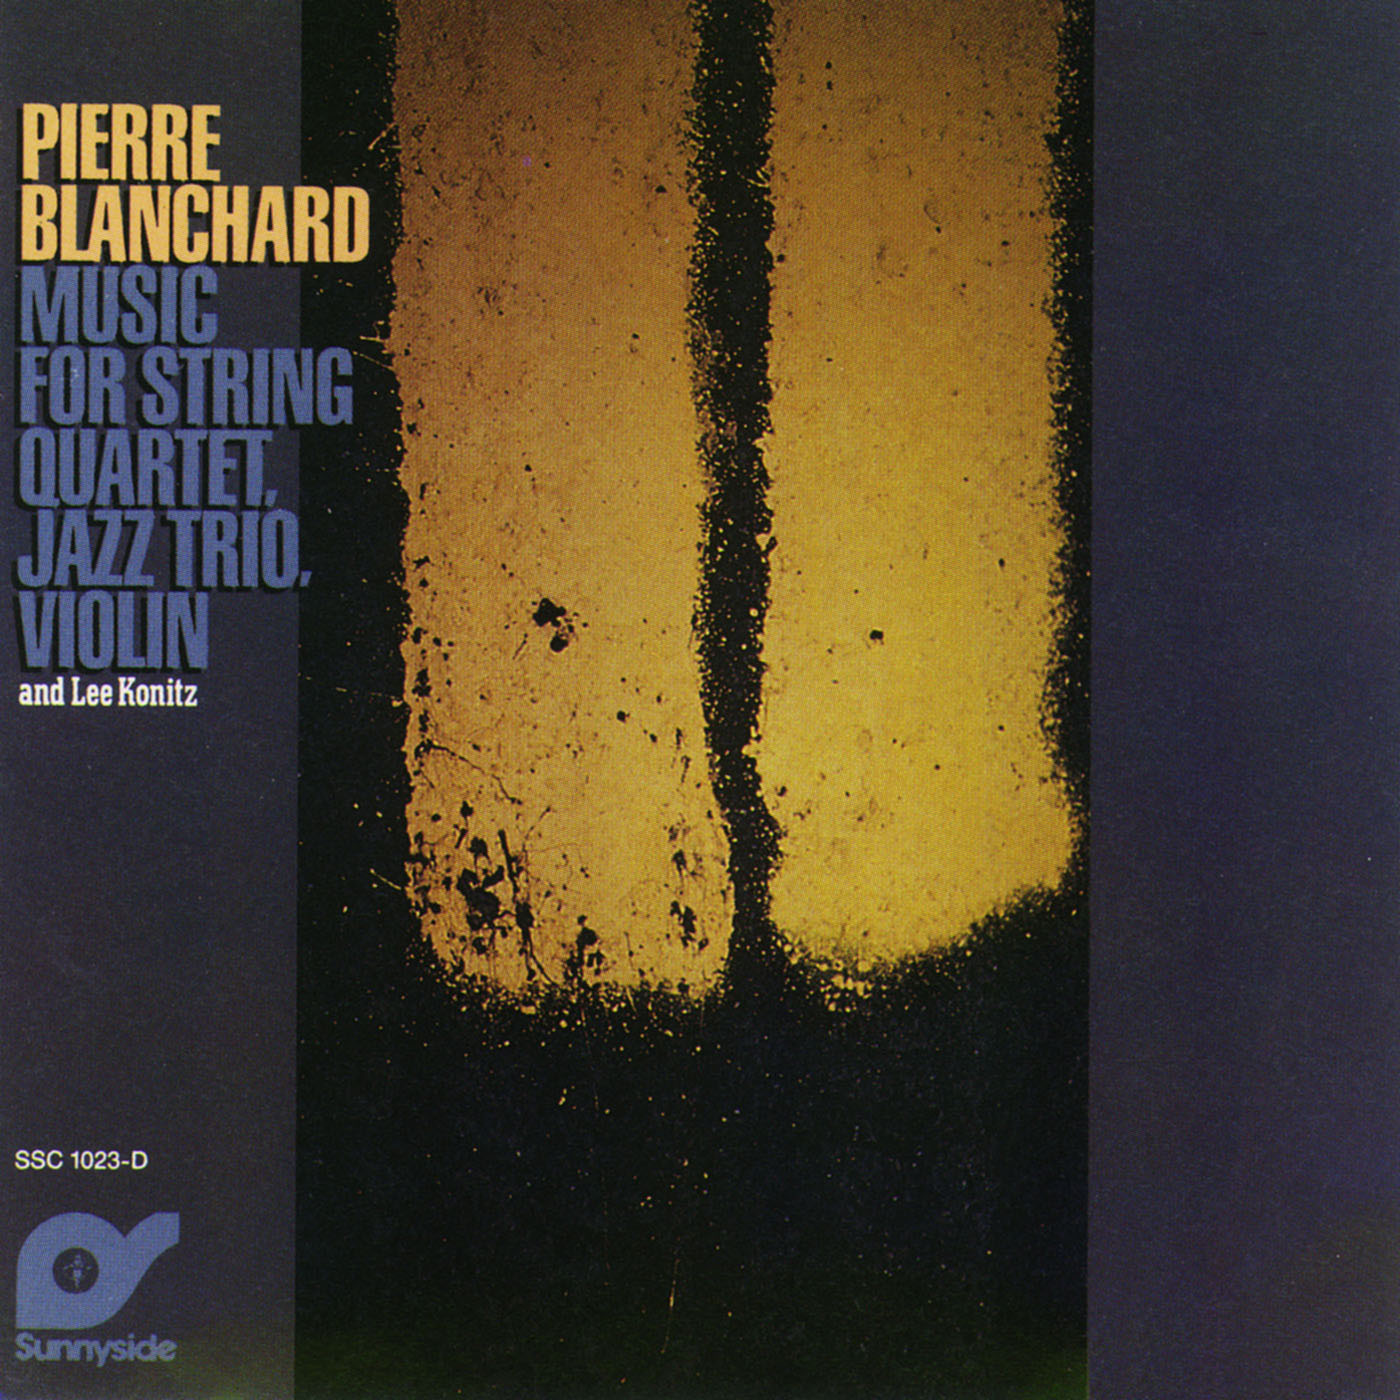 Music For String Quartet, Jazz Trio, Violin and Lee Lonitz by Pierre Blanchard cover